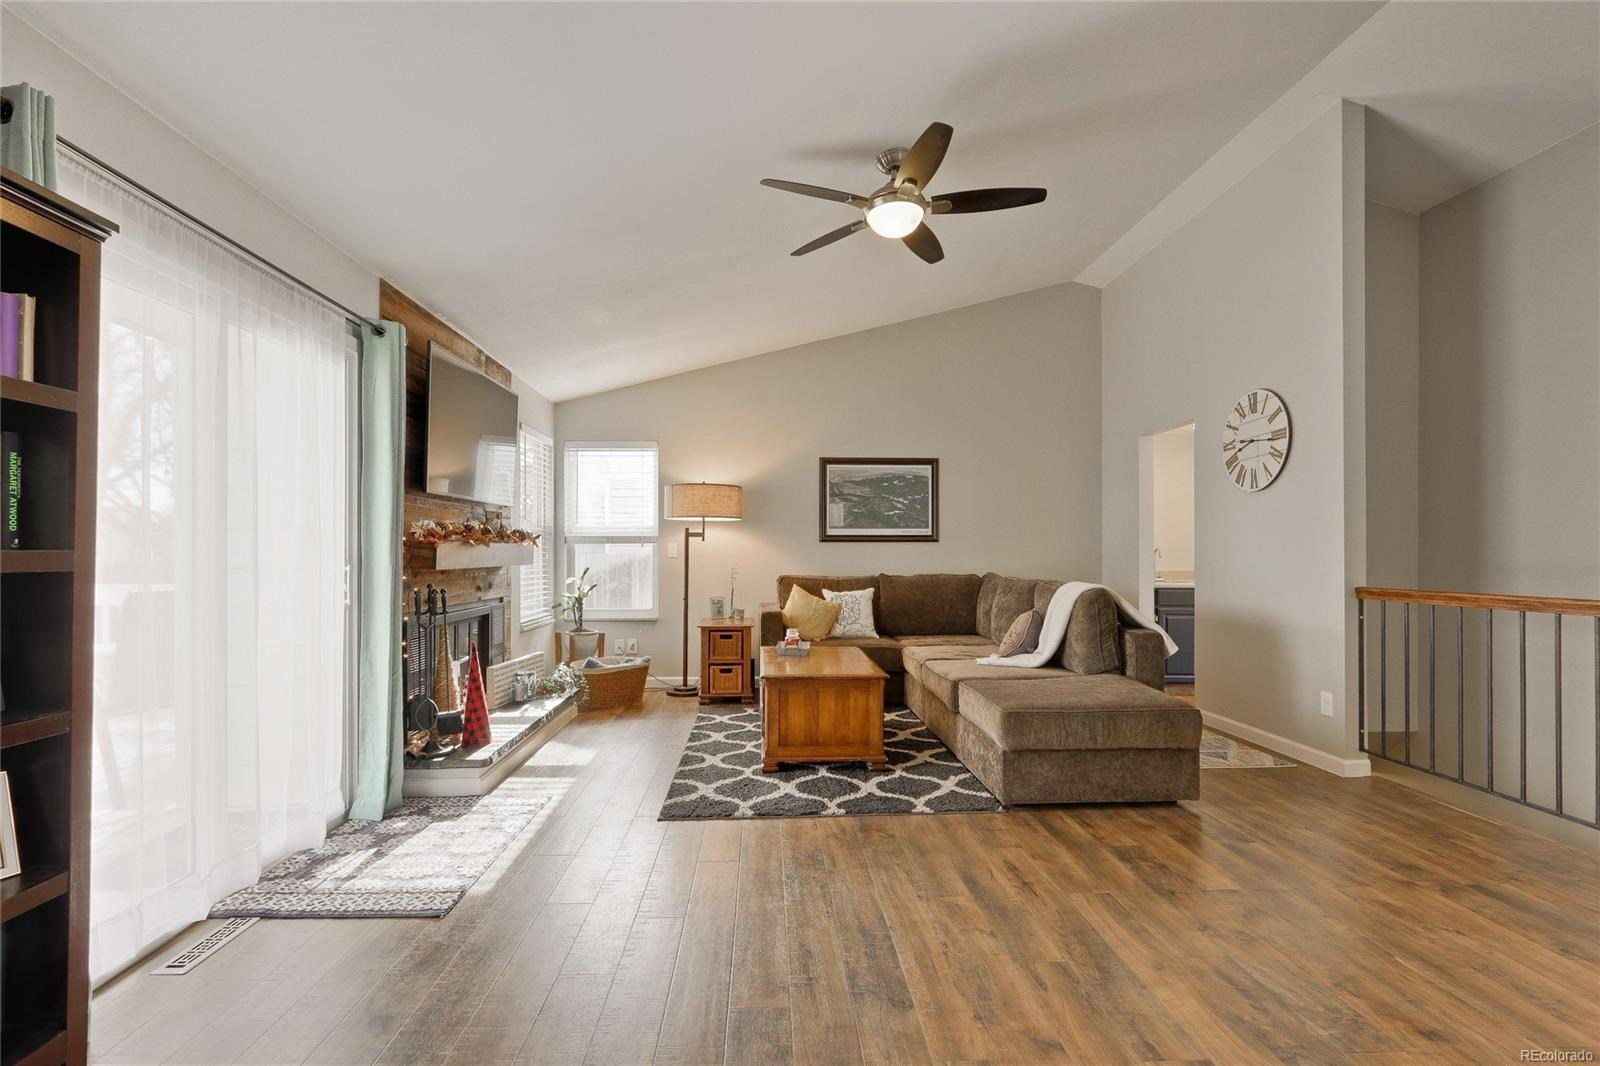 MLS# 9811960 - 6 - 7500 Chase Street, Arvada, CO 80003